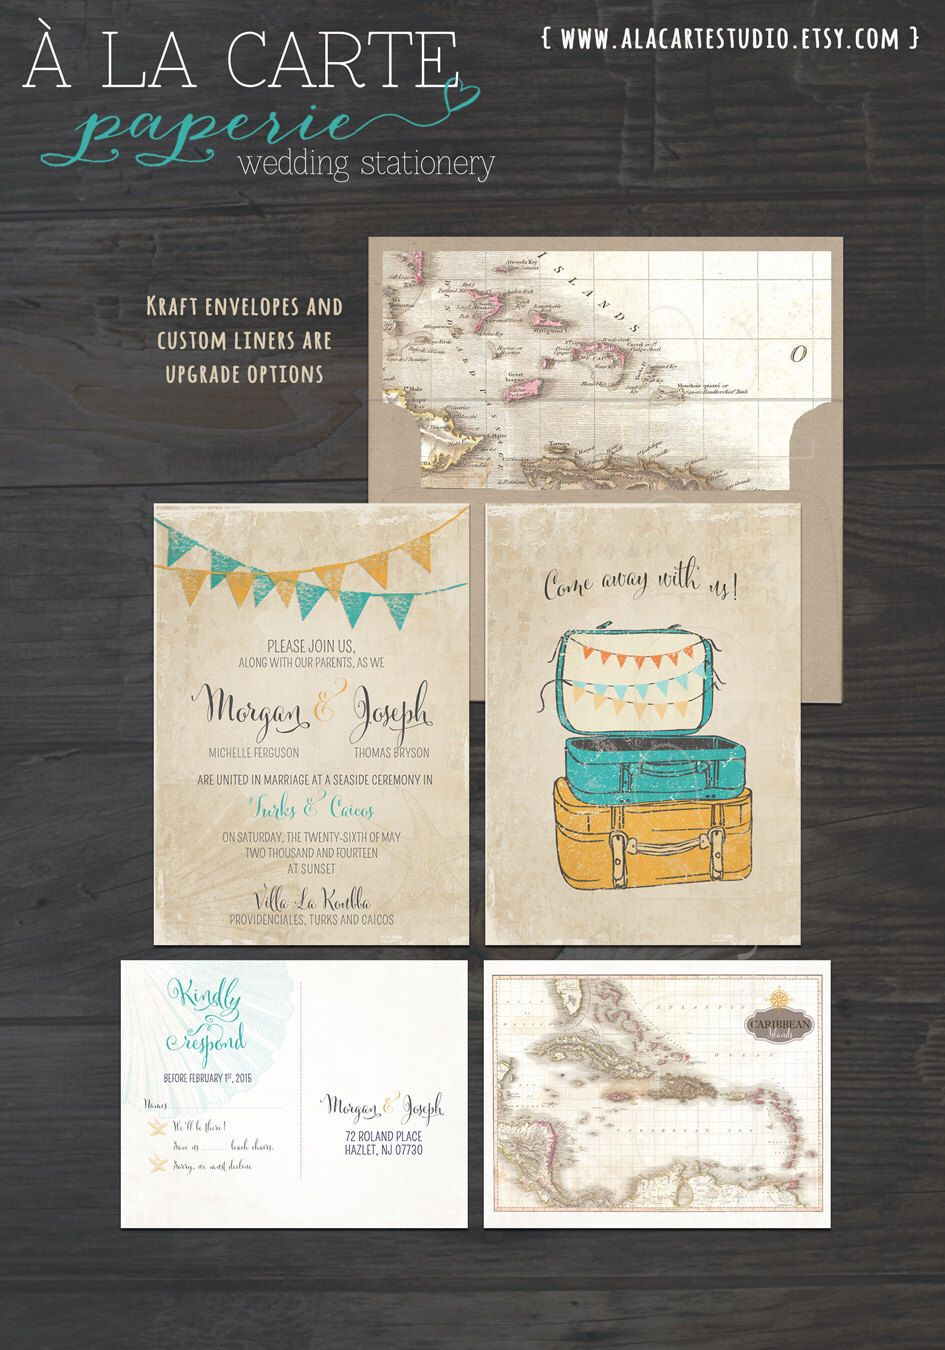 destination wedding invitation rsvp date%0A Vintage Suitcases Destination Wedding Invitation RSVP rustic vintage  illustrated wedding invitation boho chic invitation bunting flags